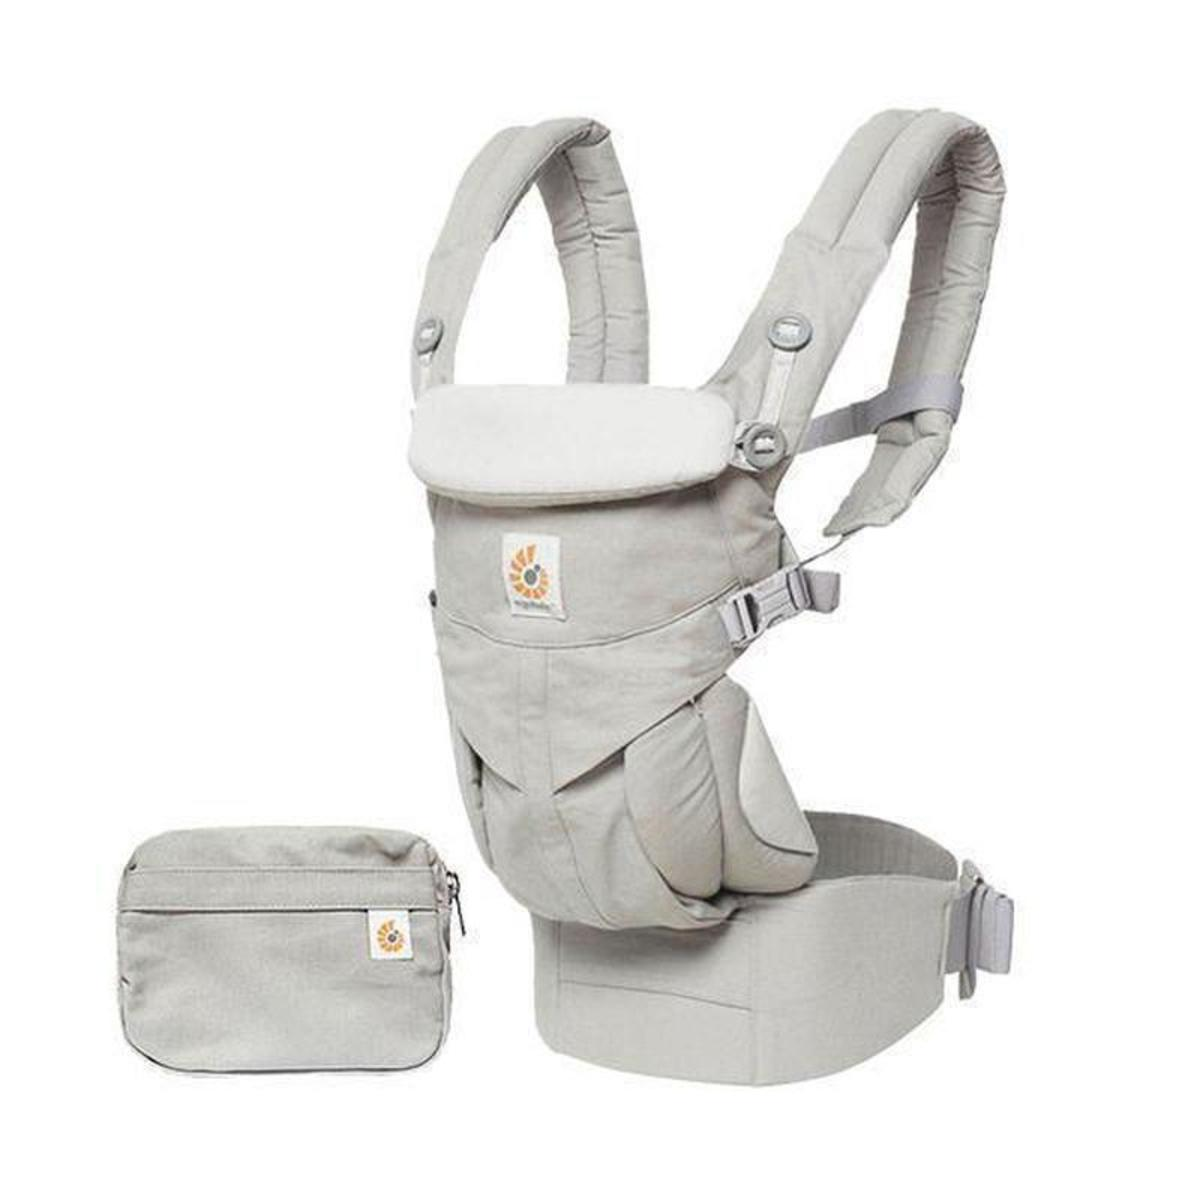 Ergobaby Omni all-stage four-type 360 baby carrier (6 models) - Pearl ash